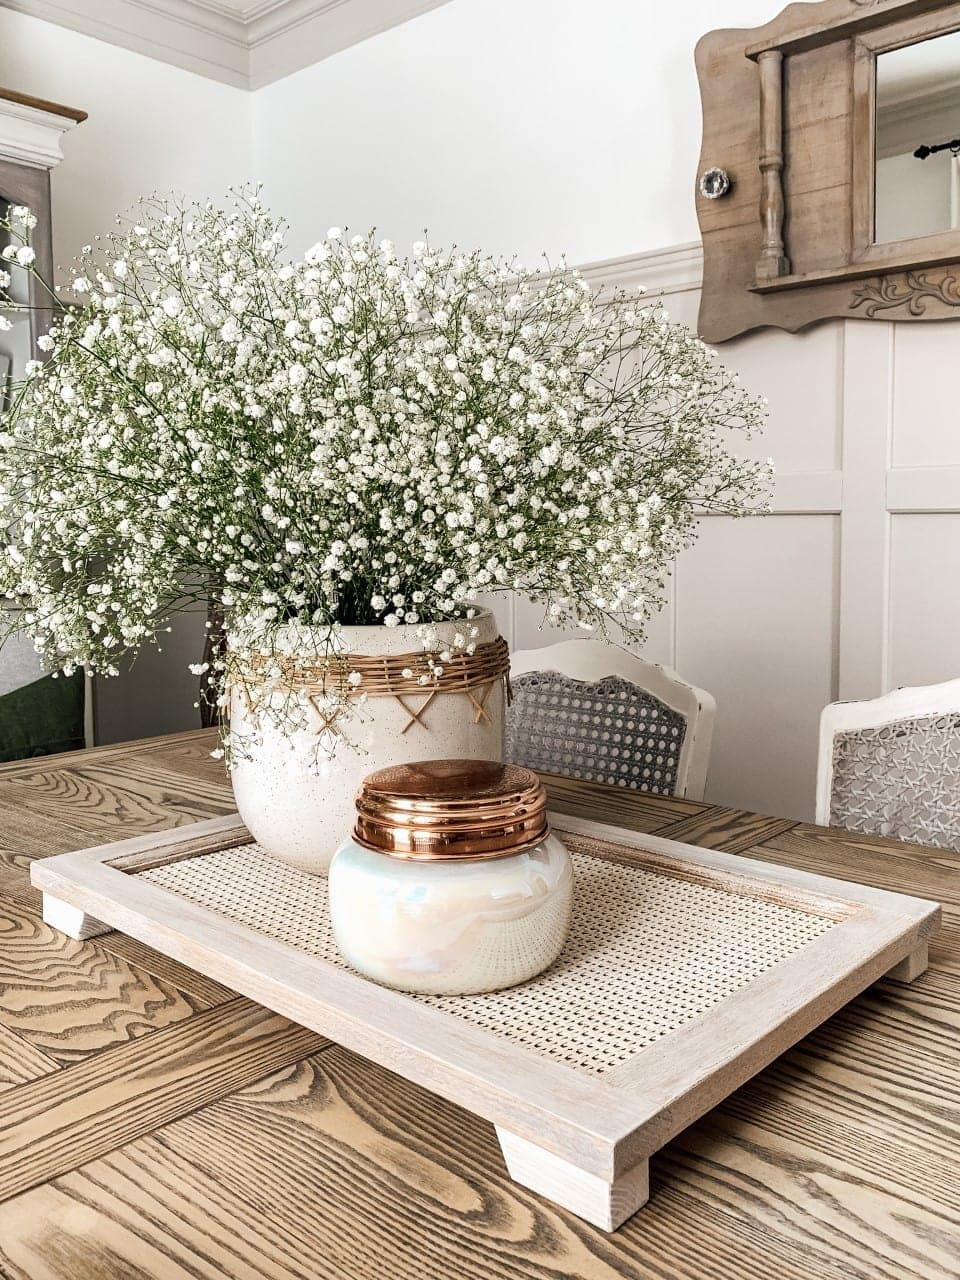 caned tray with pot of baby's breath and copper accents on table